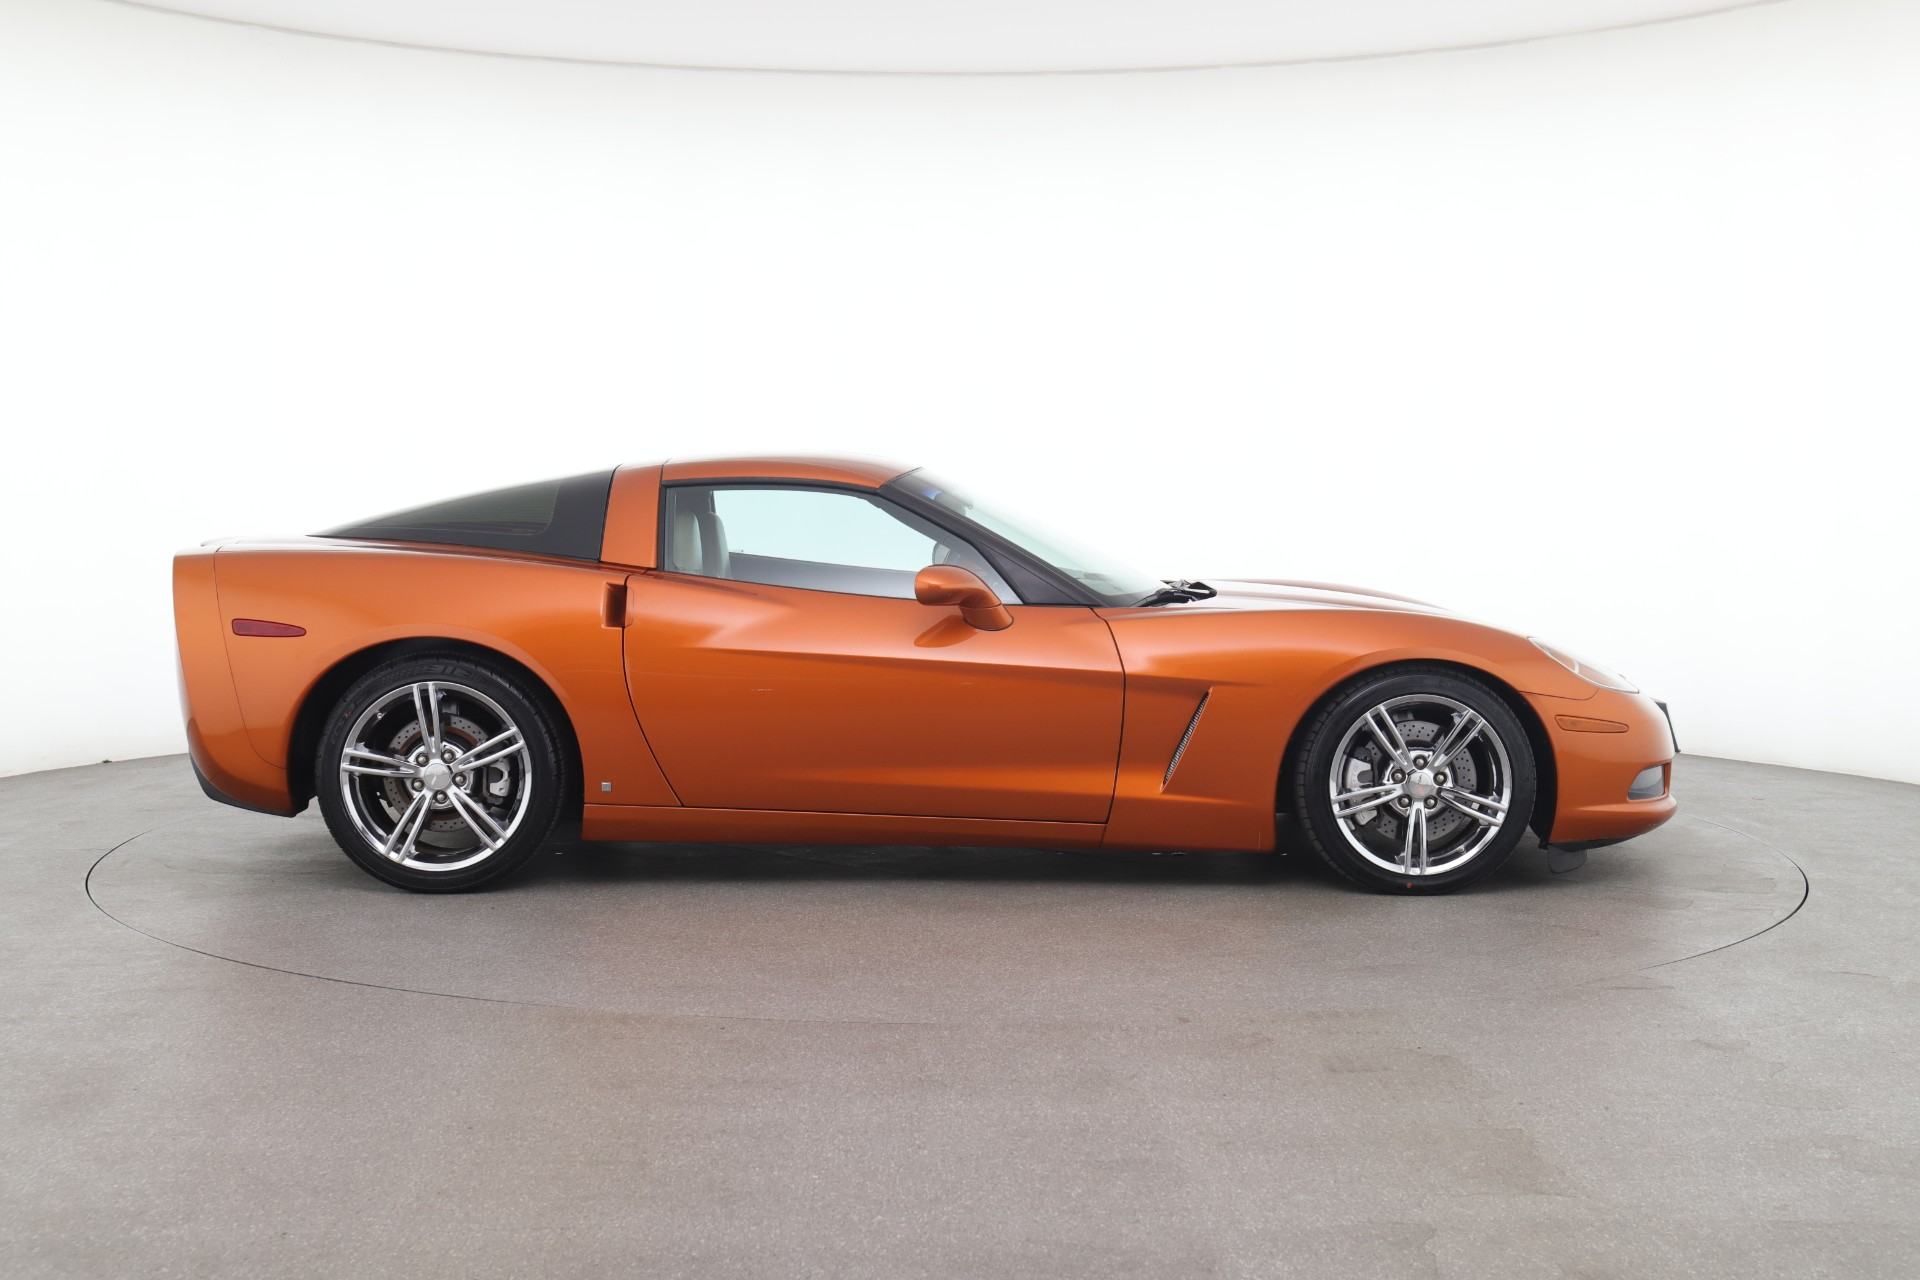 How Much Is A Corvette? The Complete Guide On Prices And Features